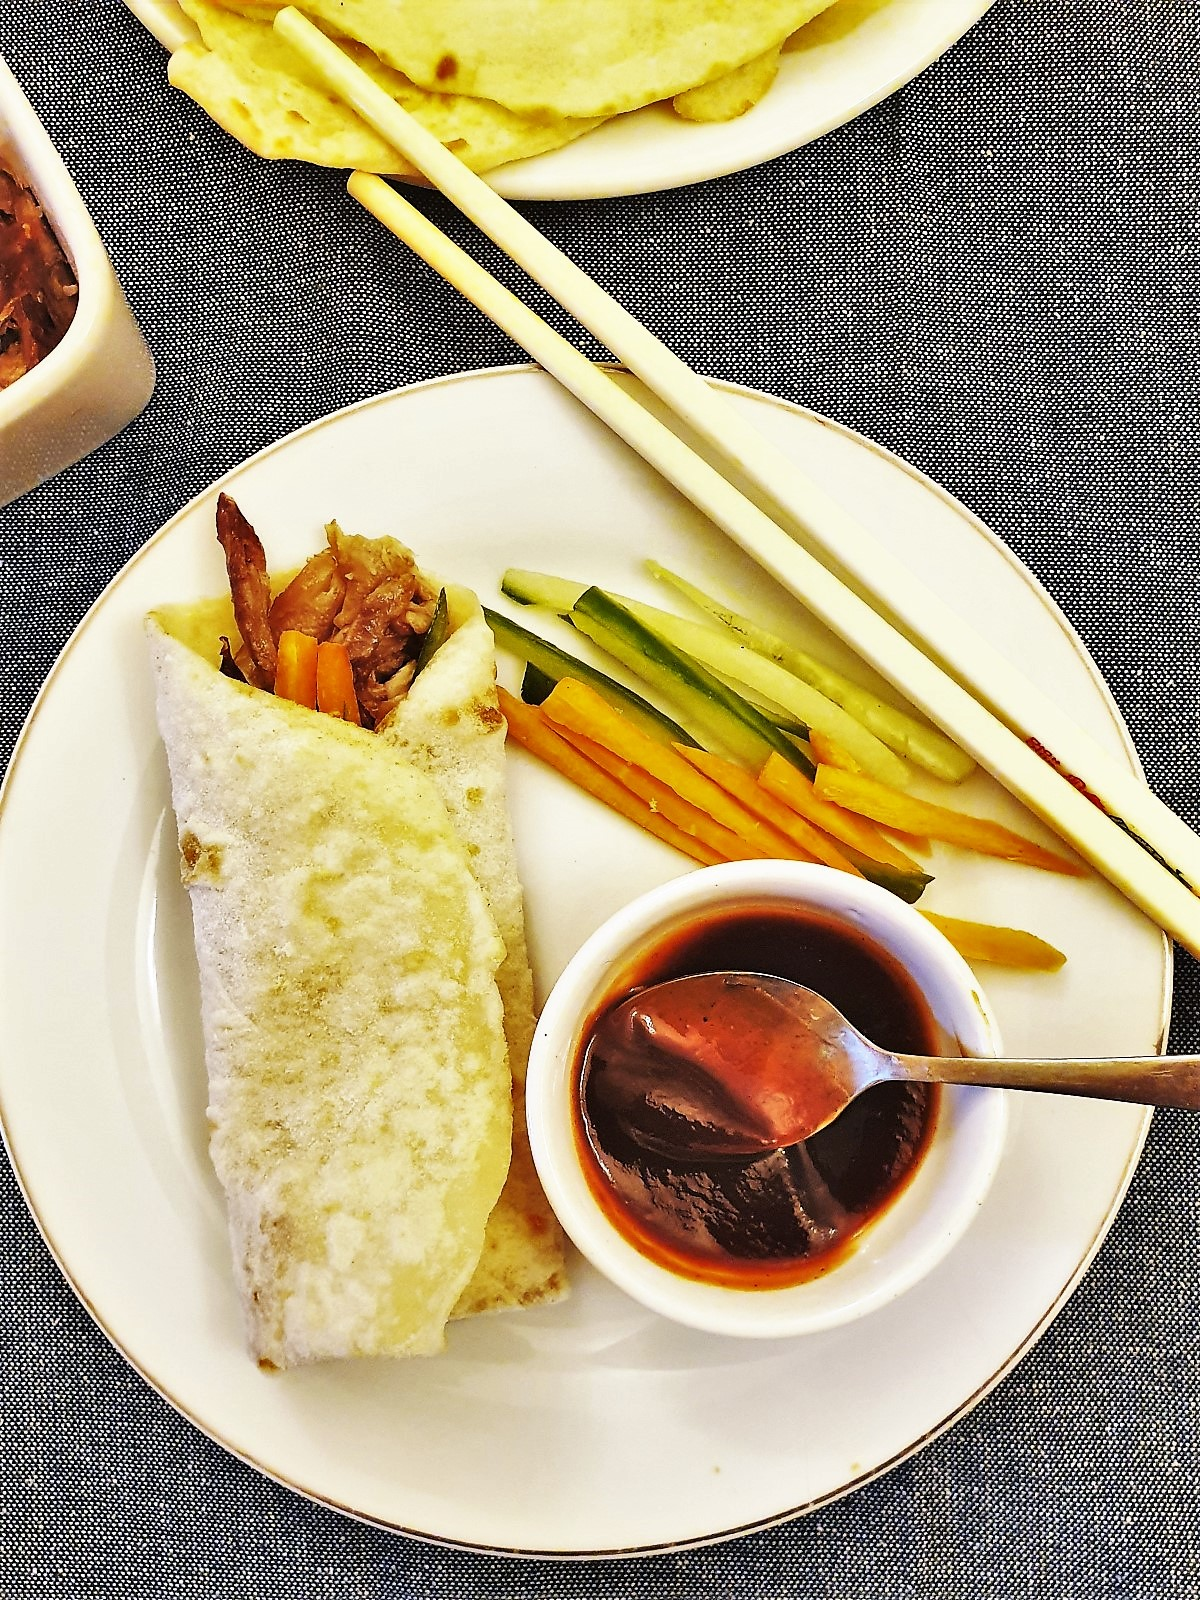 A rolled duck pancake on a plate with a dish of hoisin sauce.